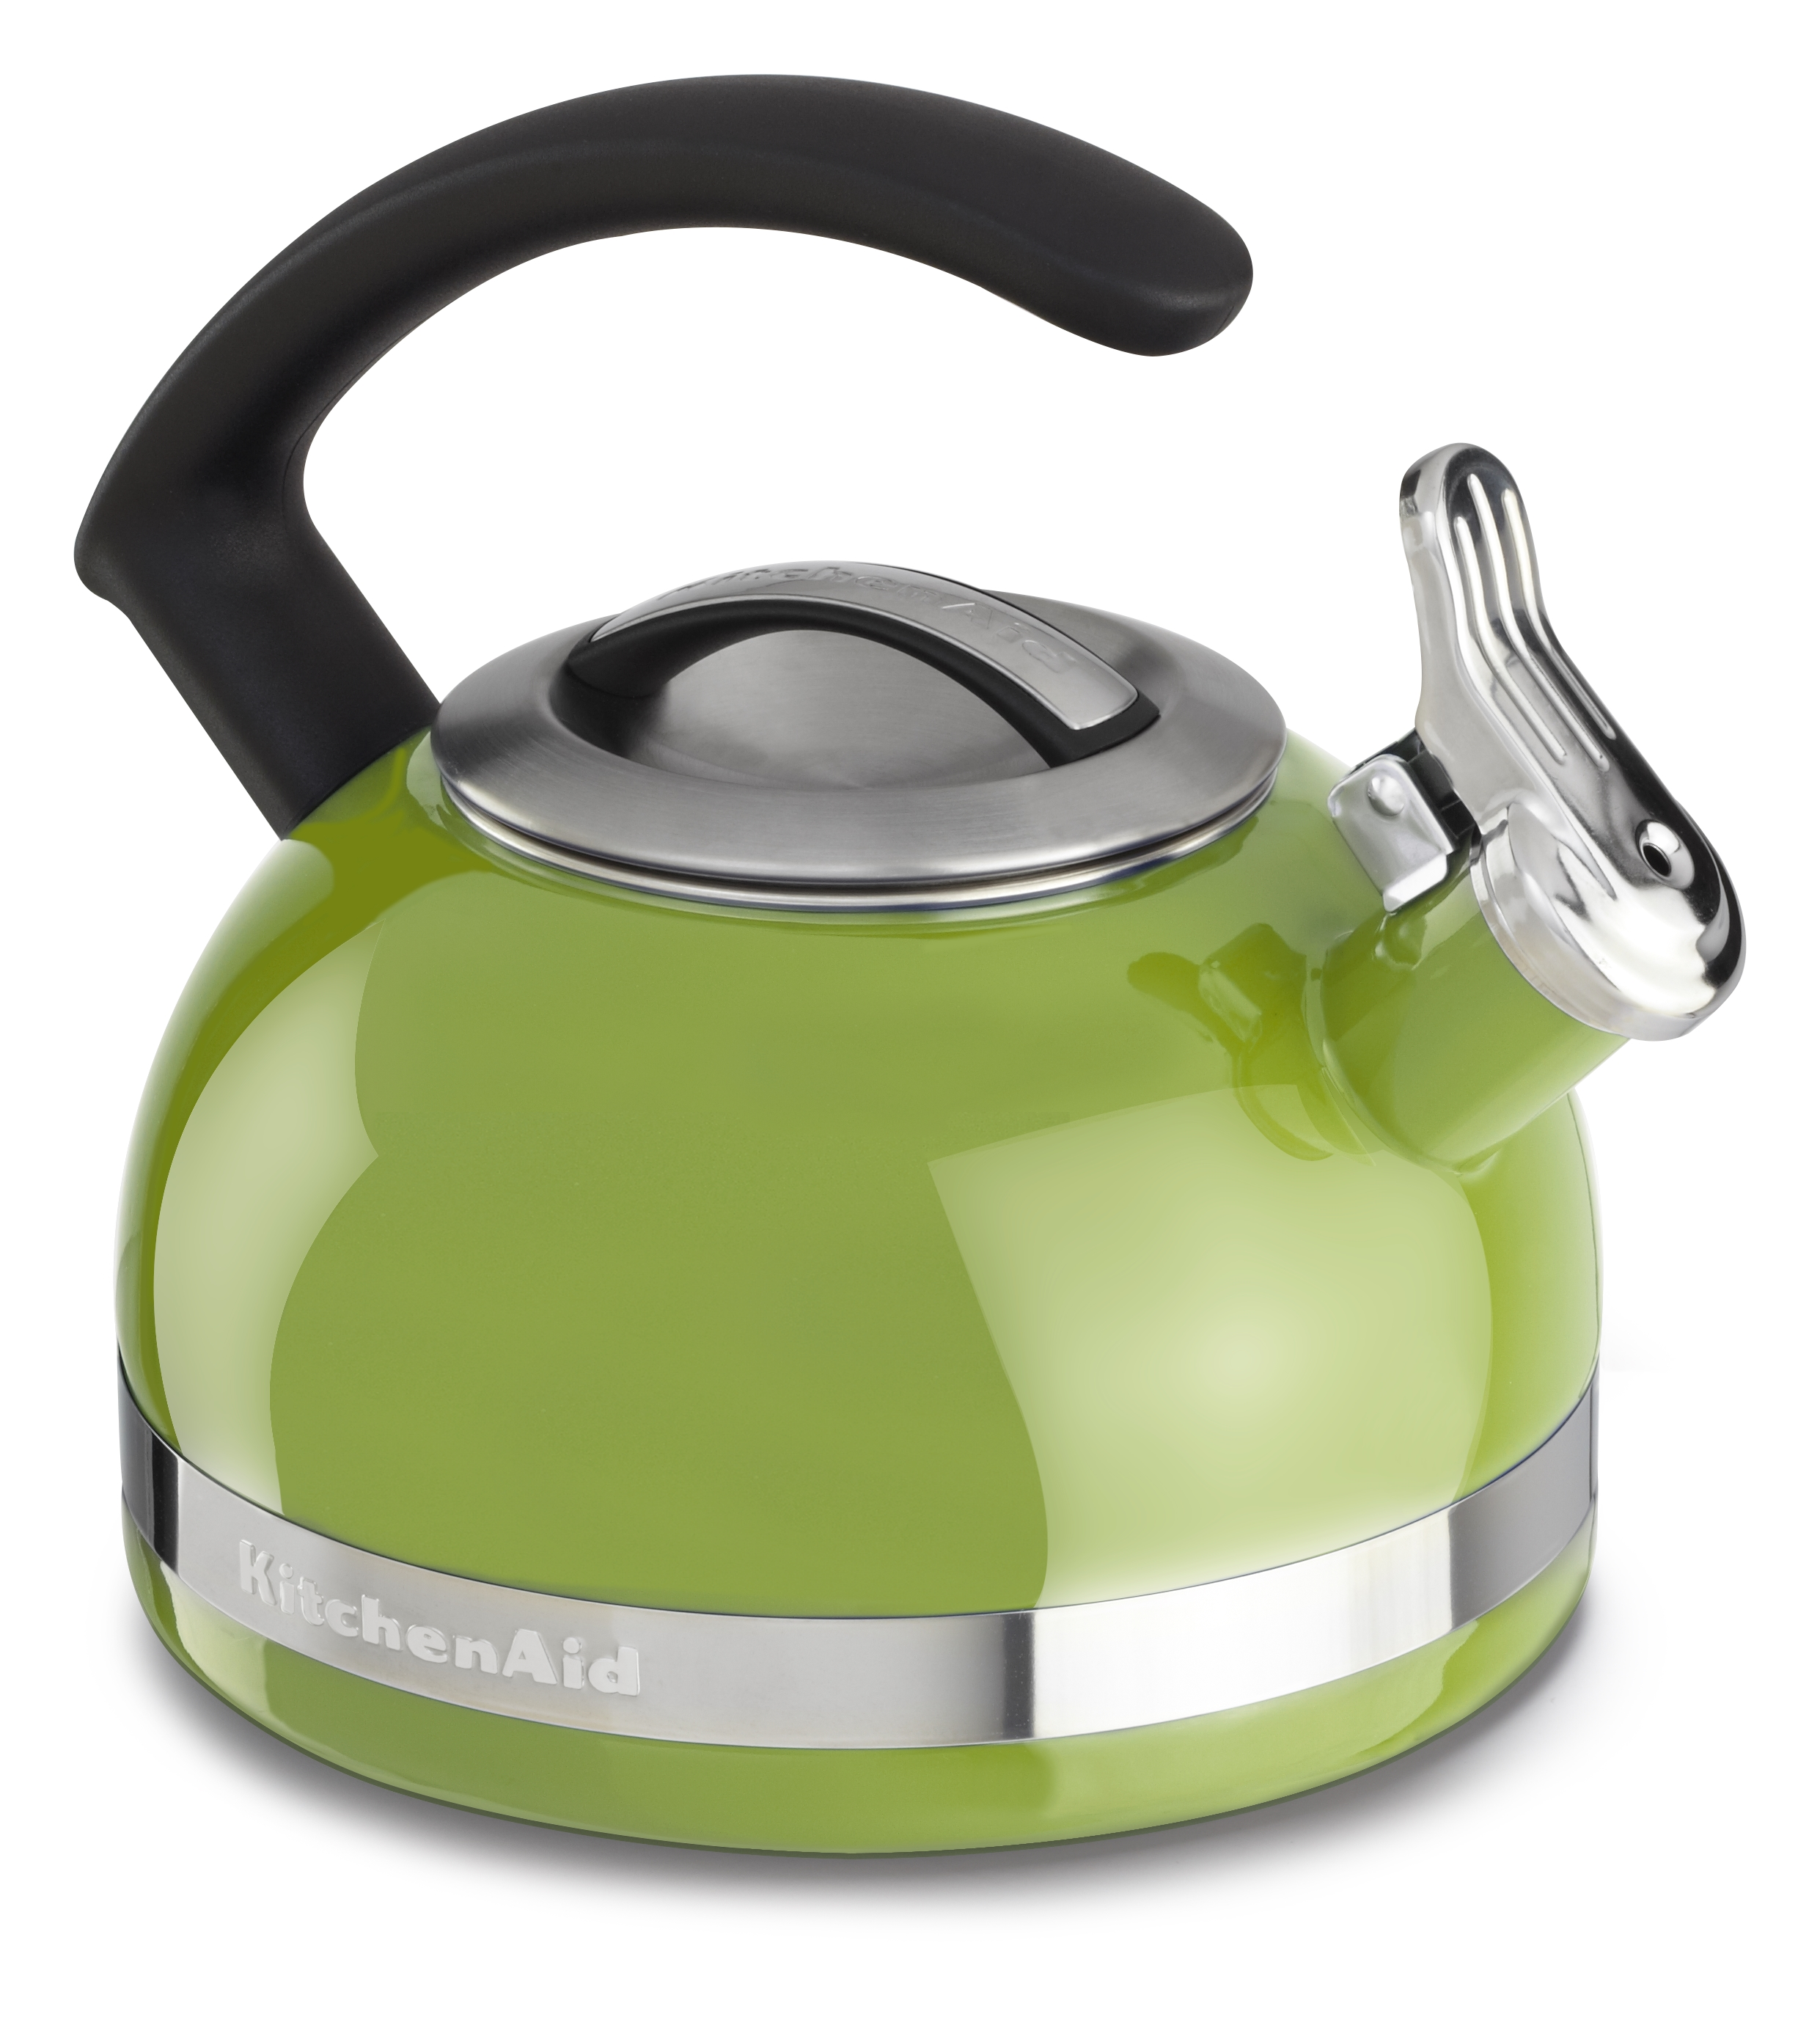 KitchenAid - Chaleira apito green - R$ 299